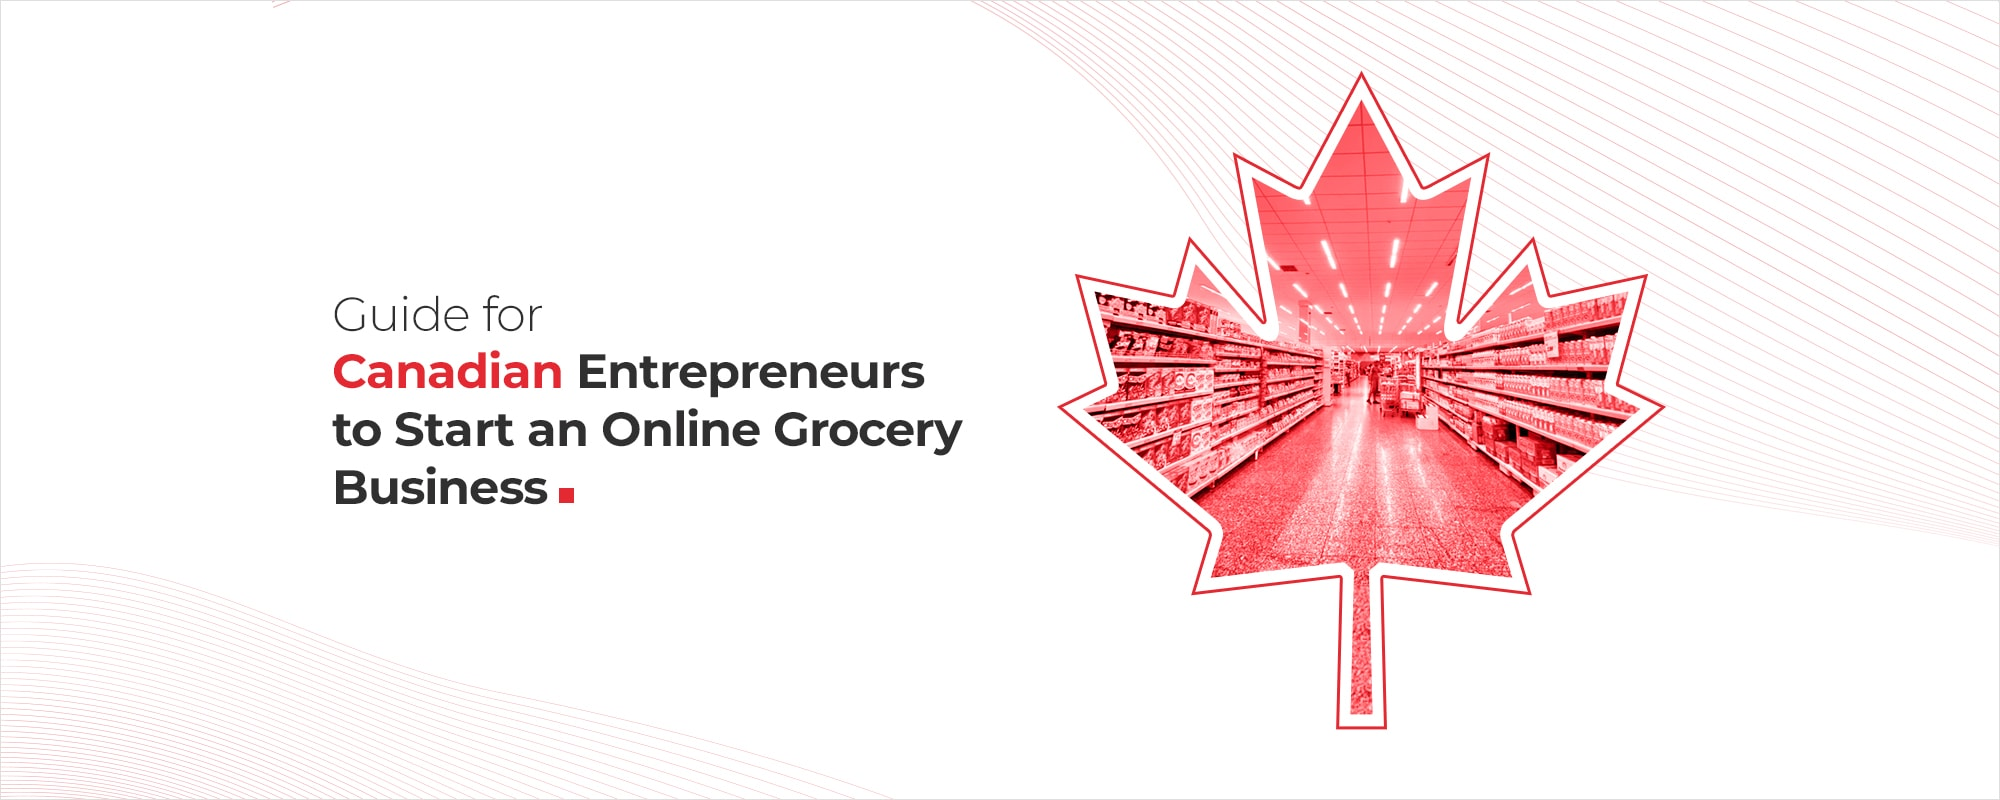 A Guide For Canadian Entrepreneurs To Start An Online Grocery Business